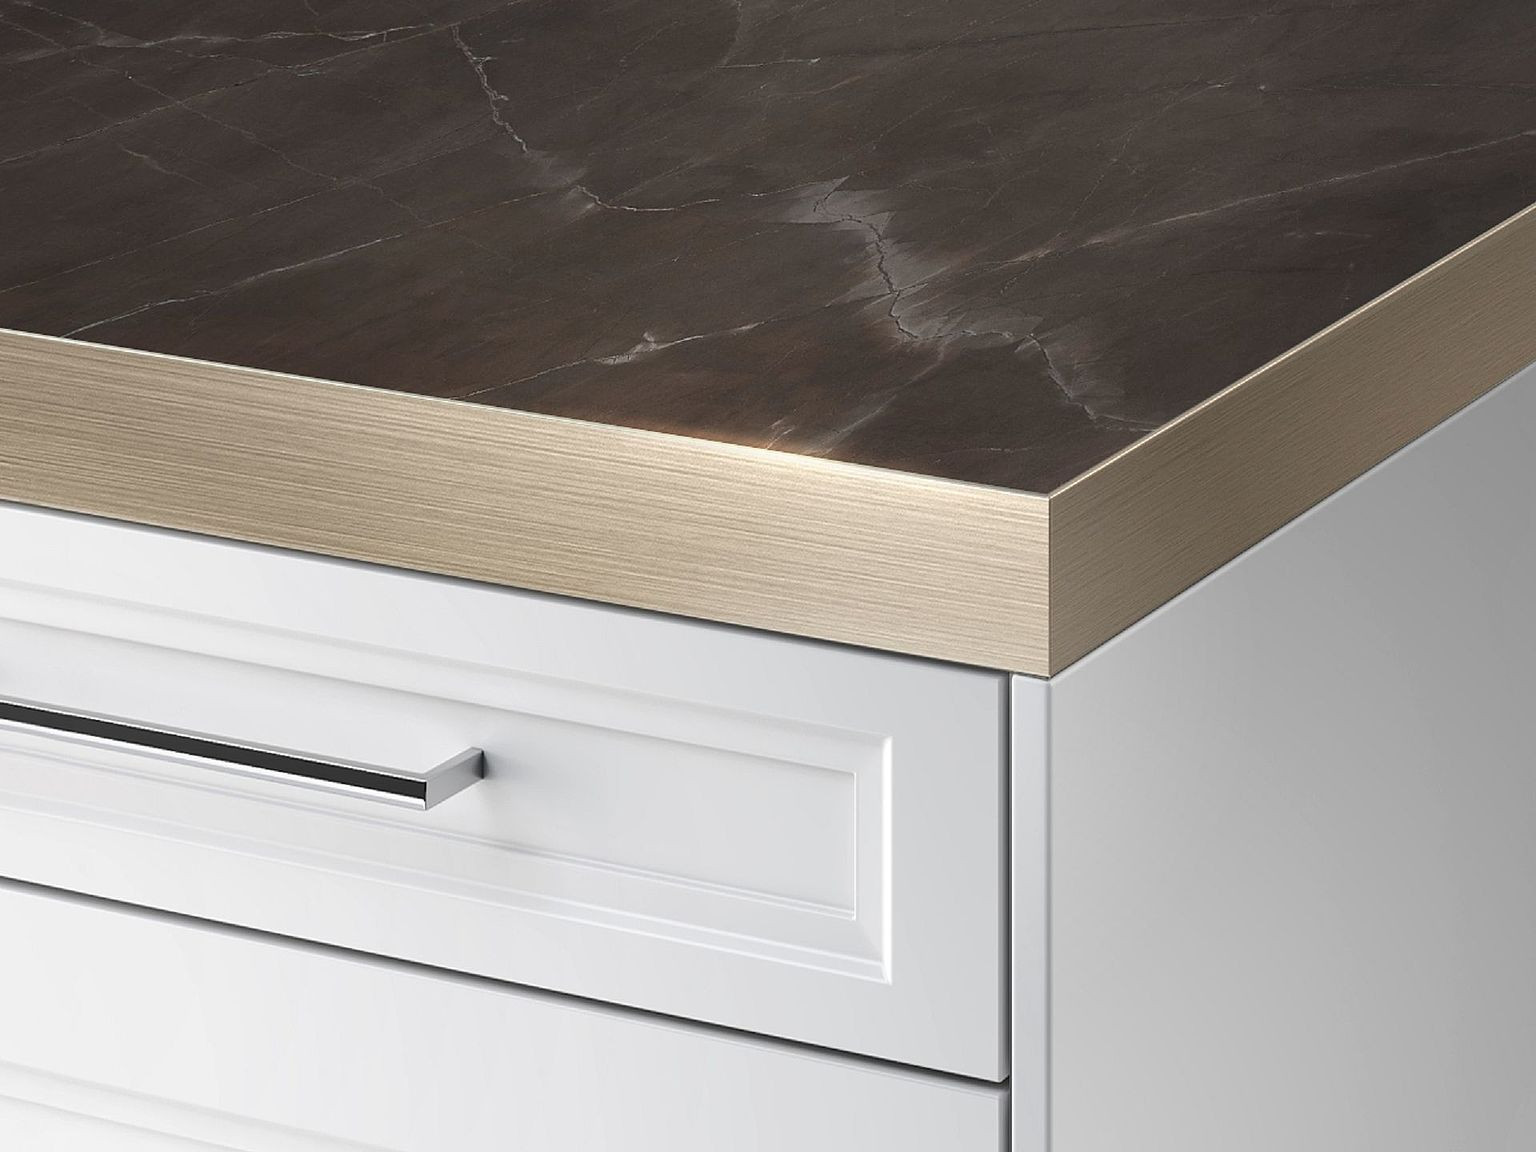 SieMatic StoneDesign kitchen countertop with metal edge.